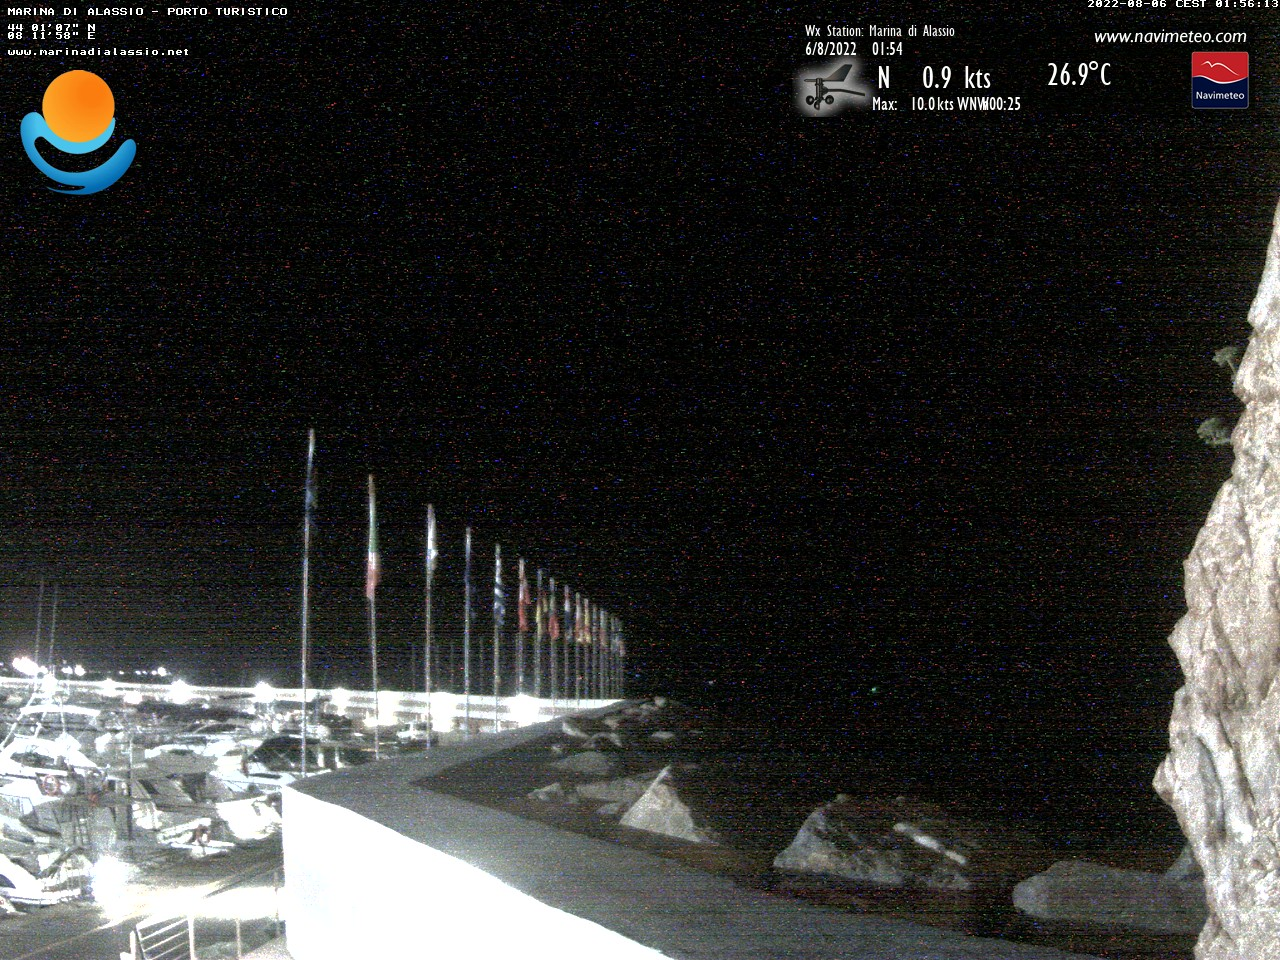 Webcam Marina di Alassio e Isola di Gallinara